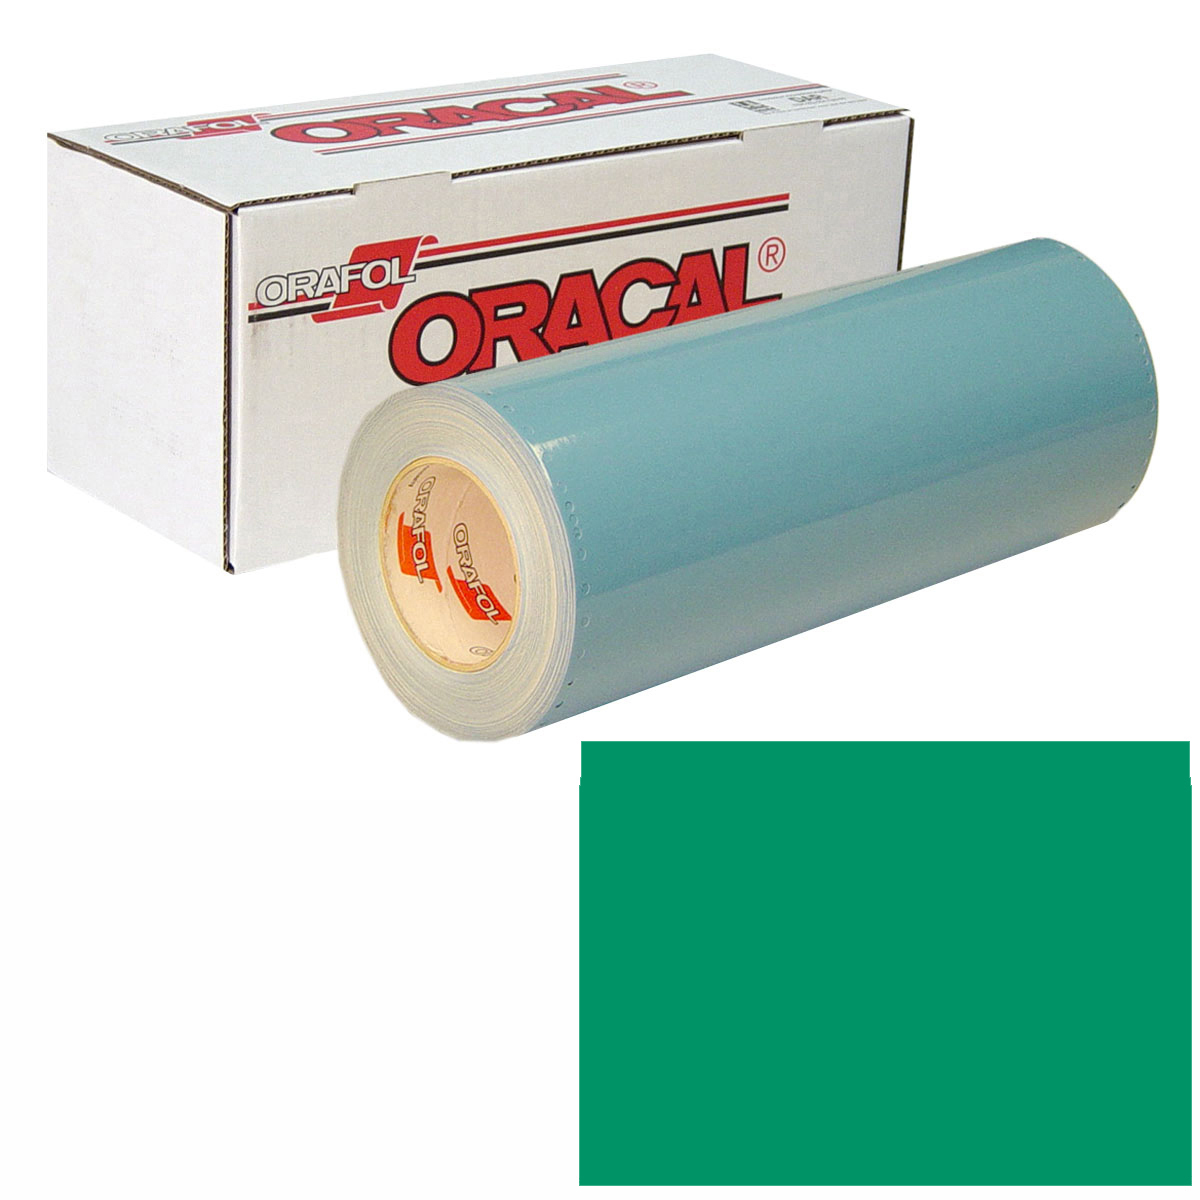 ORACAL 751 Unp 48in X 50yd 061 Green